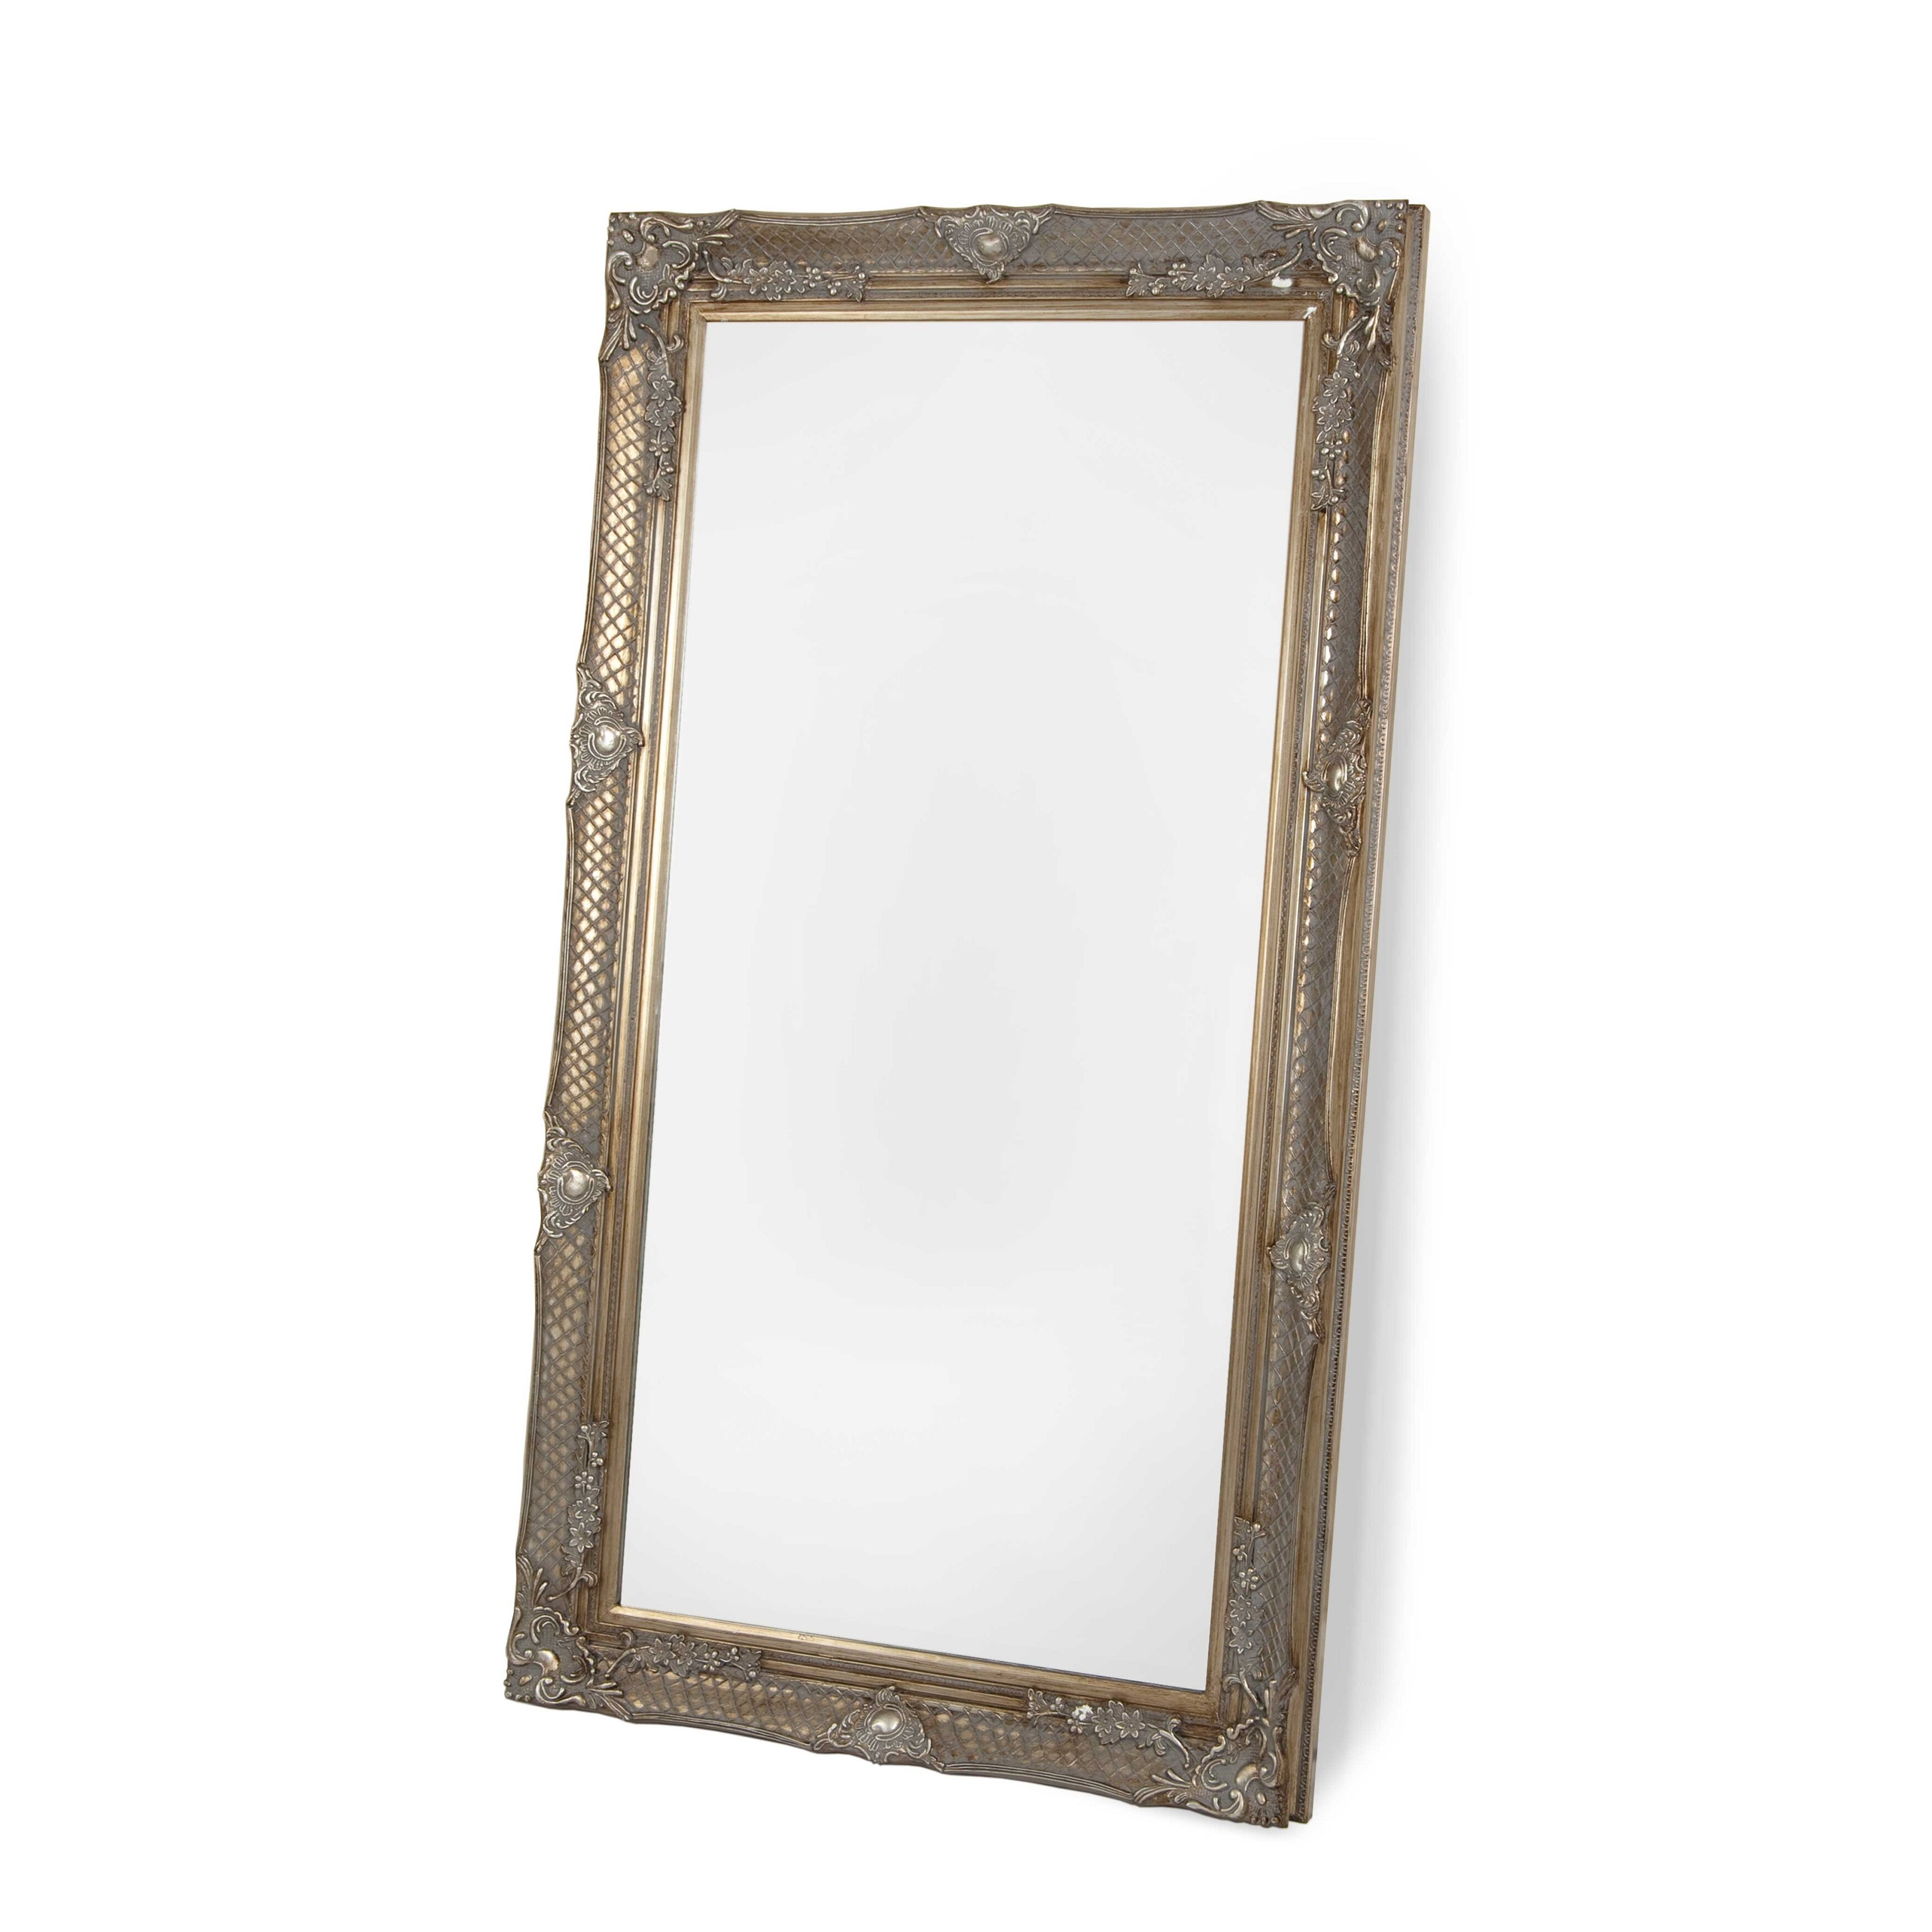 Selections by chaumont belgrave floor mirror reviews for Glass floor mirror